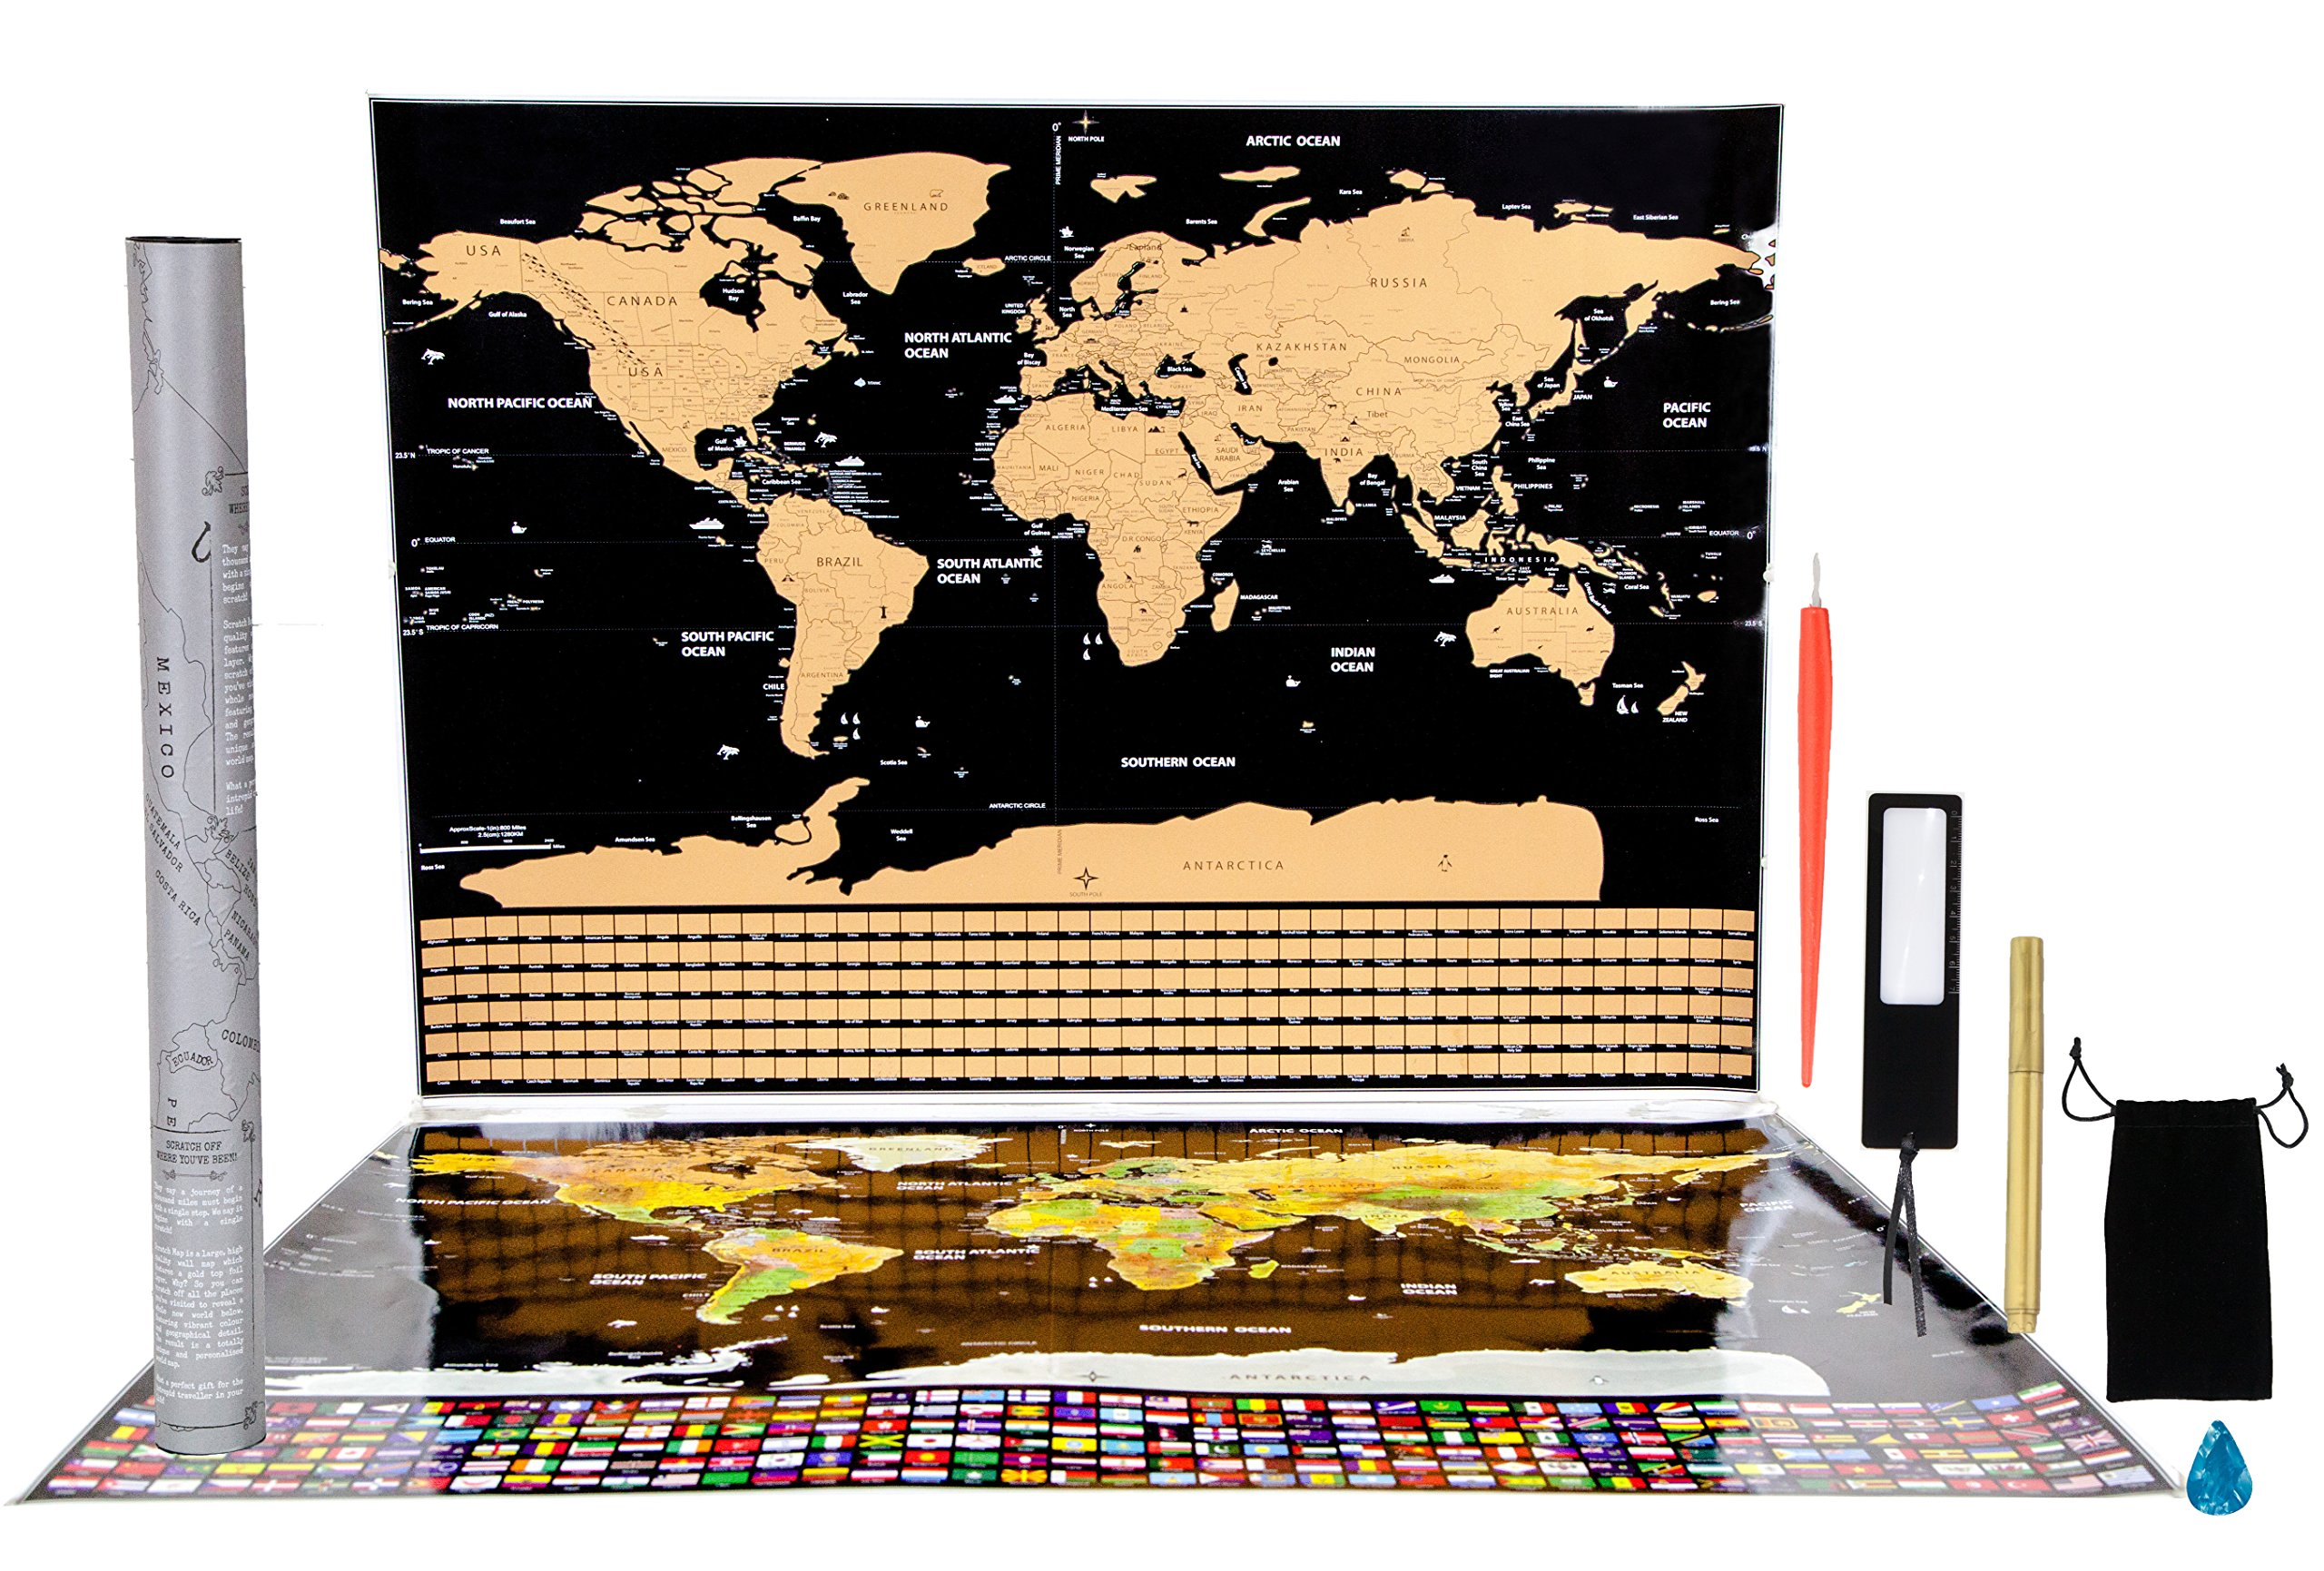 Scratch Off World Map Poster with US States, Thicker Paper, Large Size 32.5X23.5'', Country Flags, Includes Gift Box, Magnifier, 2 Scratch Tools, Dry Erase Pen, for Fun, Education, Great Gift Idea